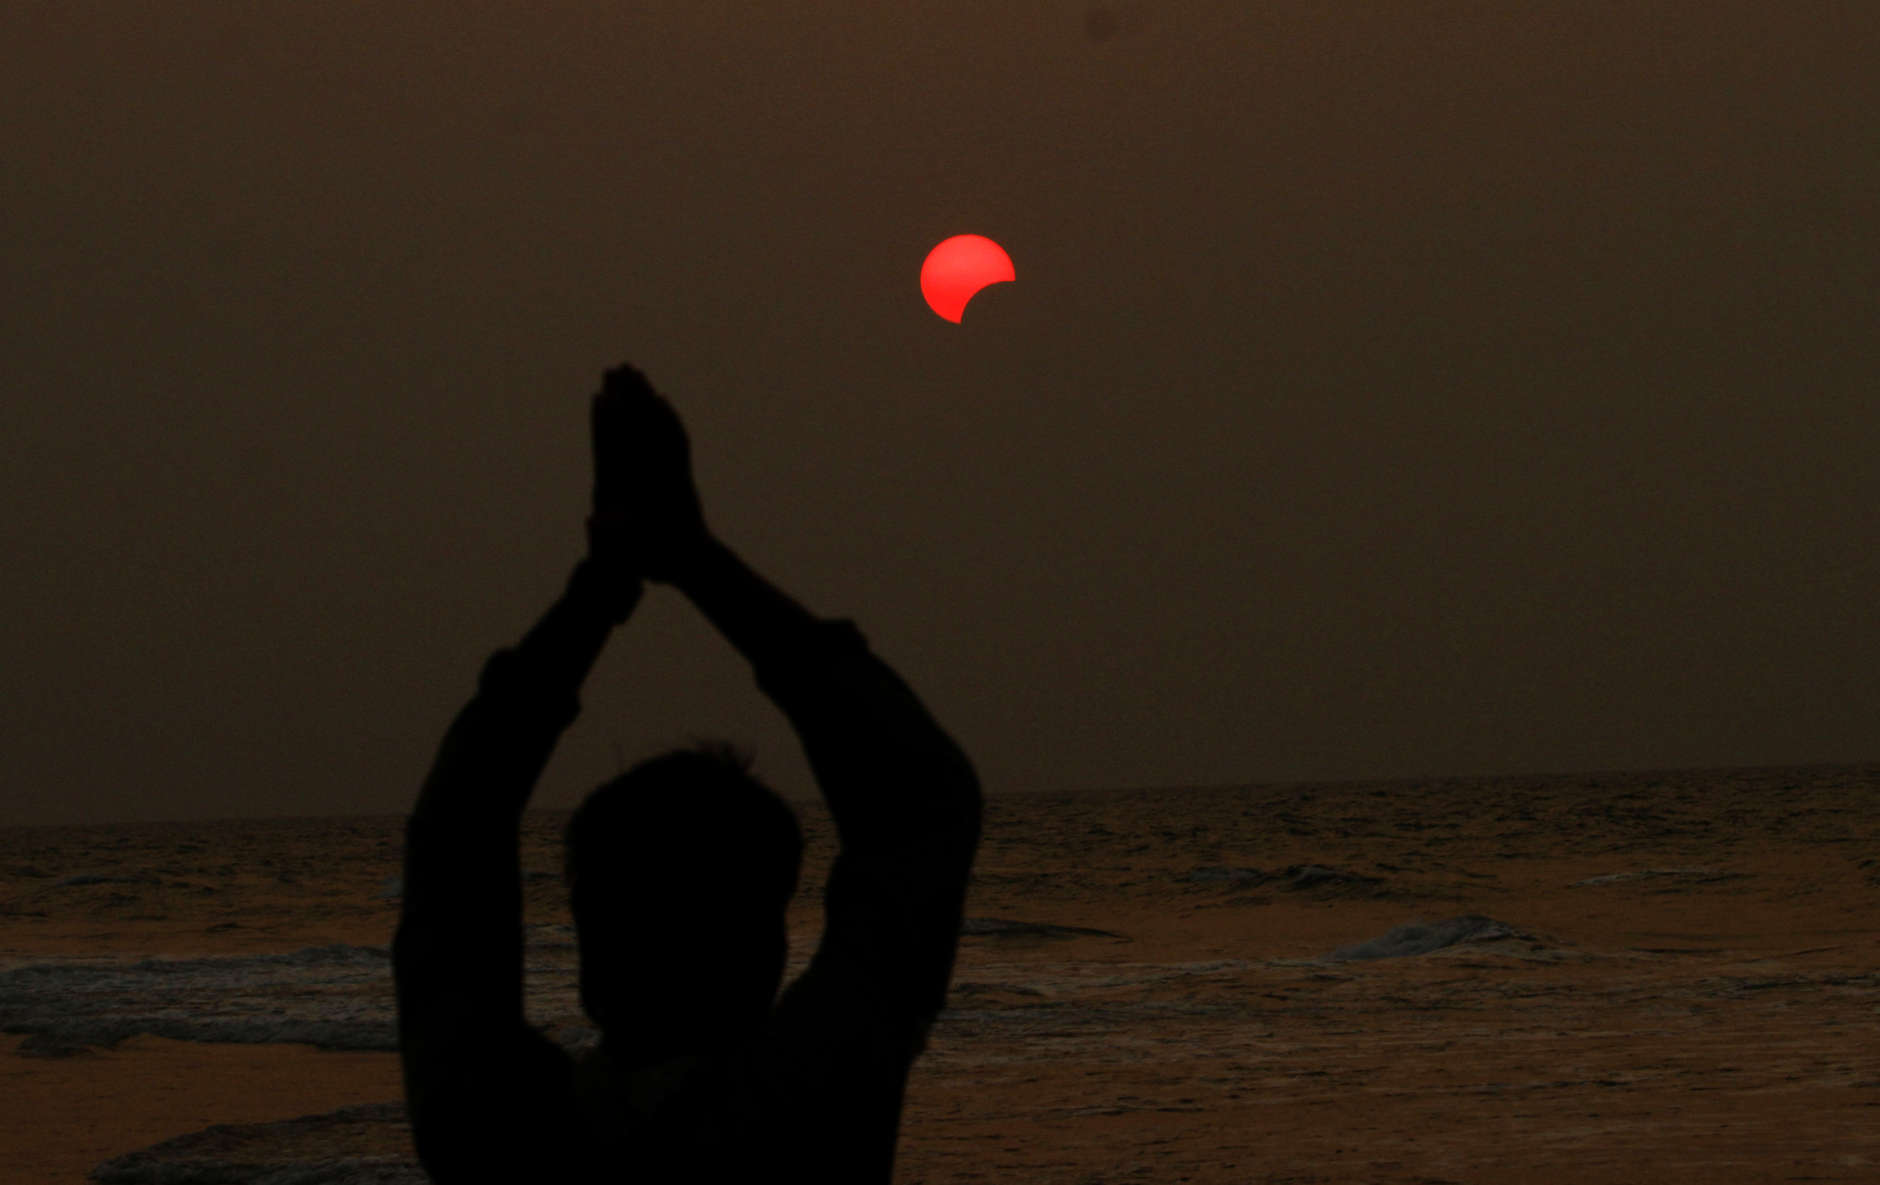 A fisherman prays during a partial solar eclipse in the sky over Bay of Bengal in Konark, 60 kilometers (37 miles) from the eastern Indian city Bhubaneswar, on Wednesday, March 9, 2016. (AP Photo/Biswaranjan Rout)